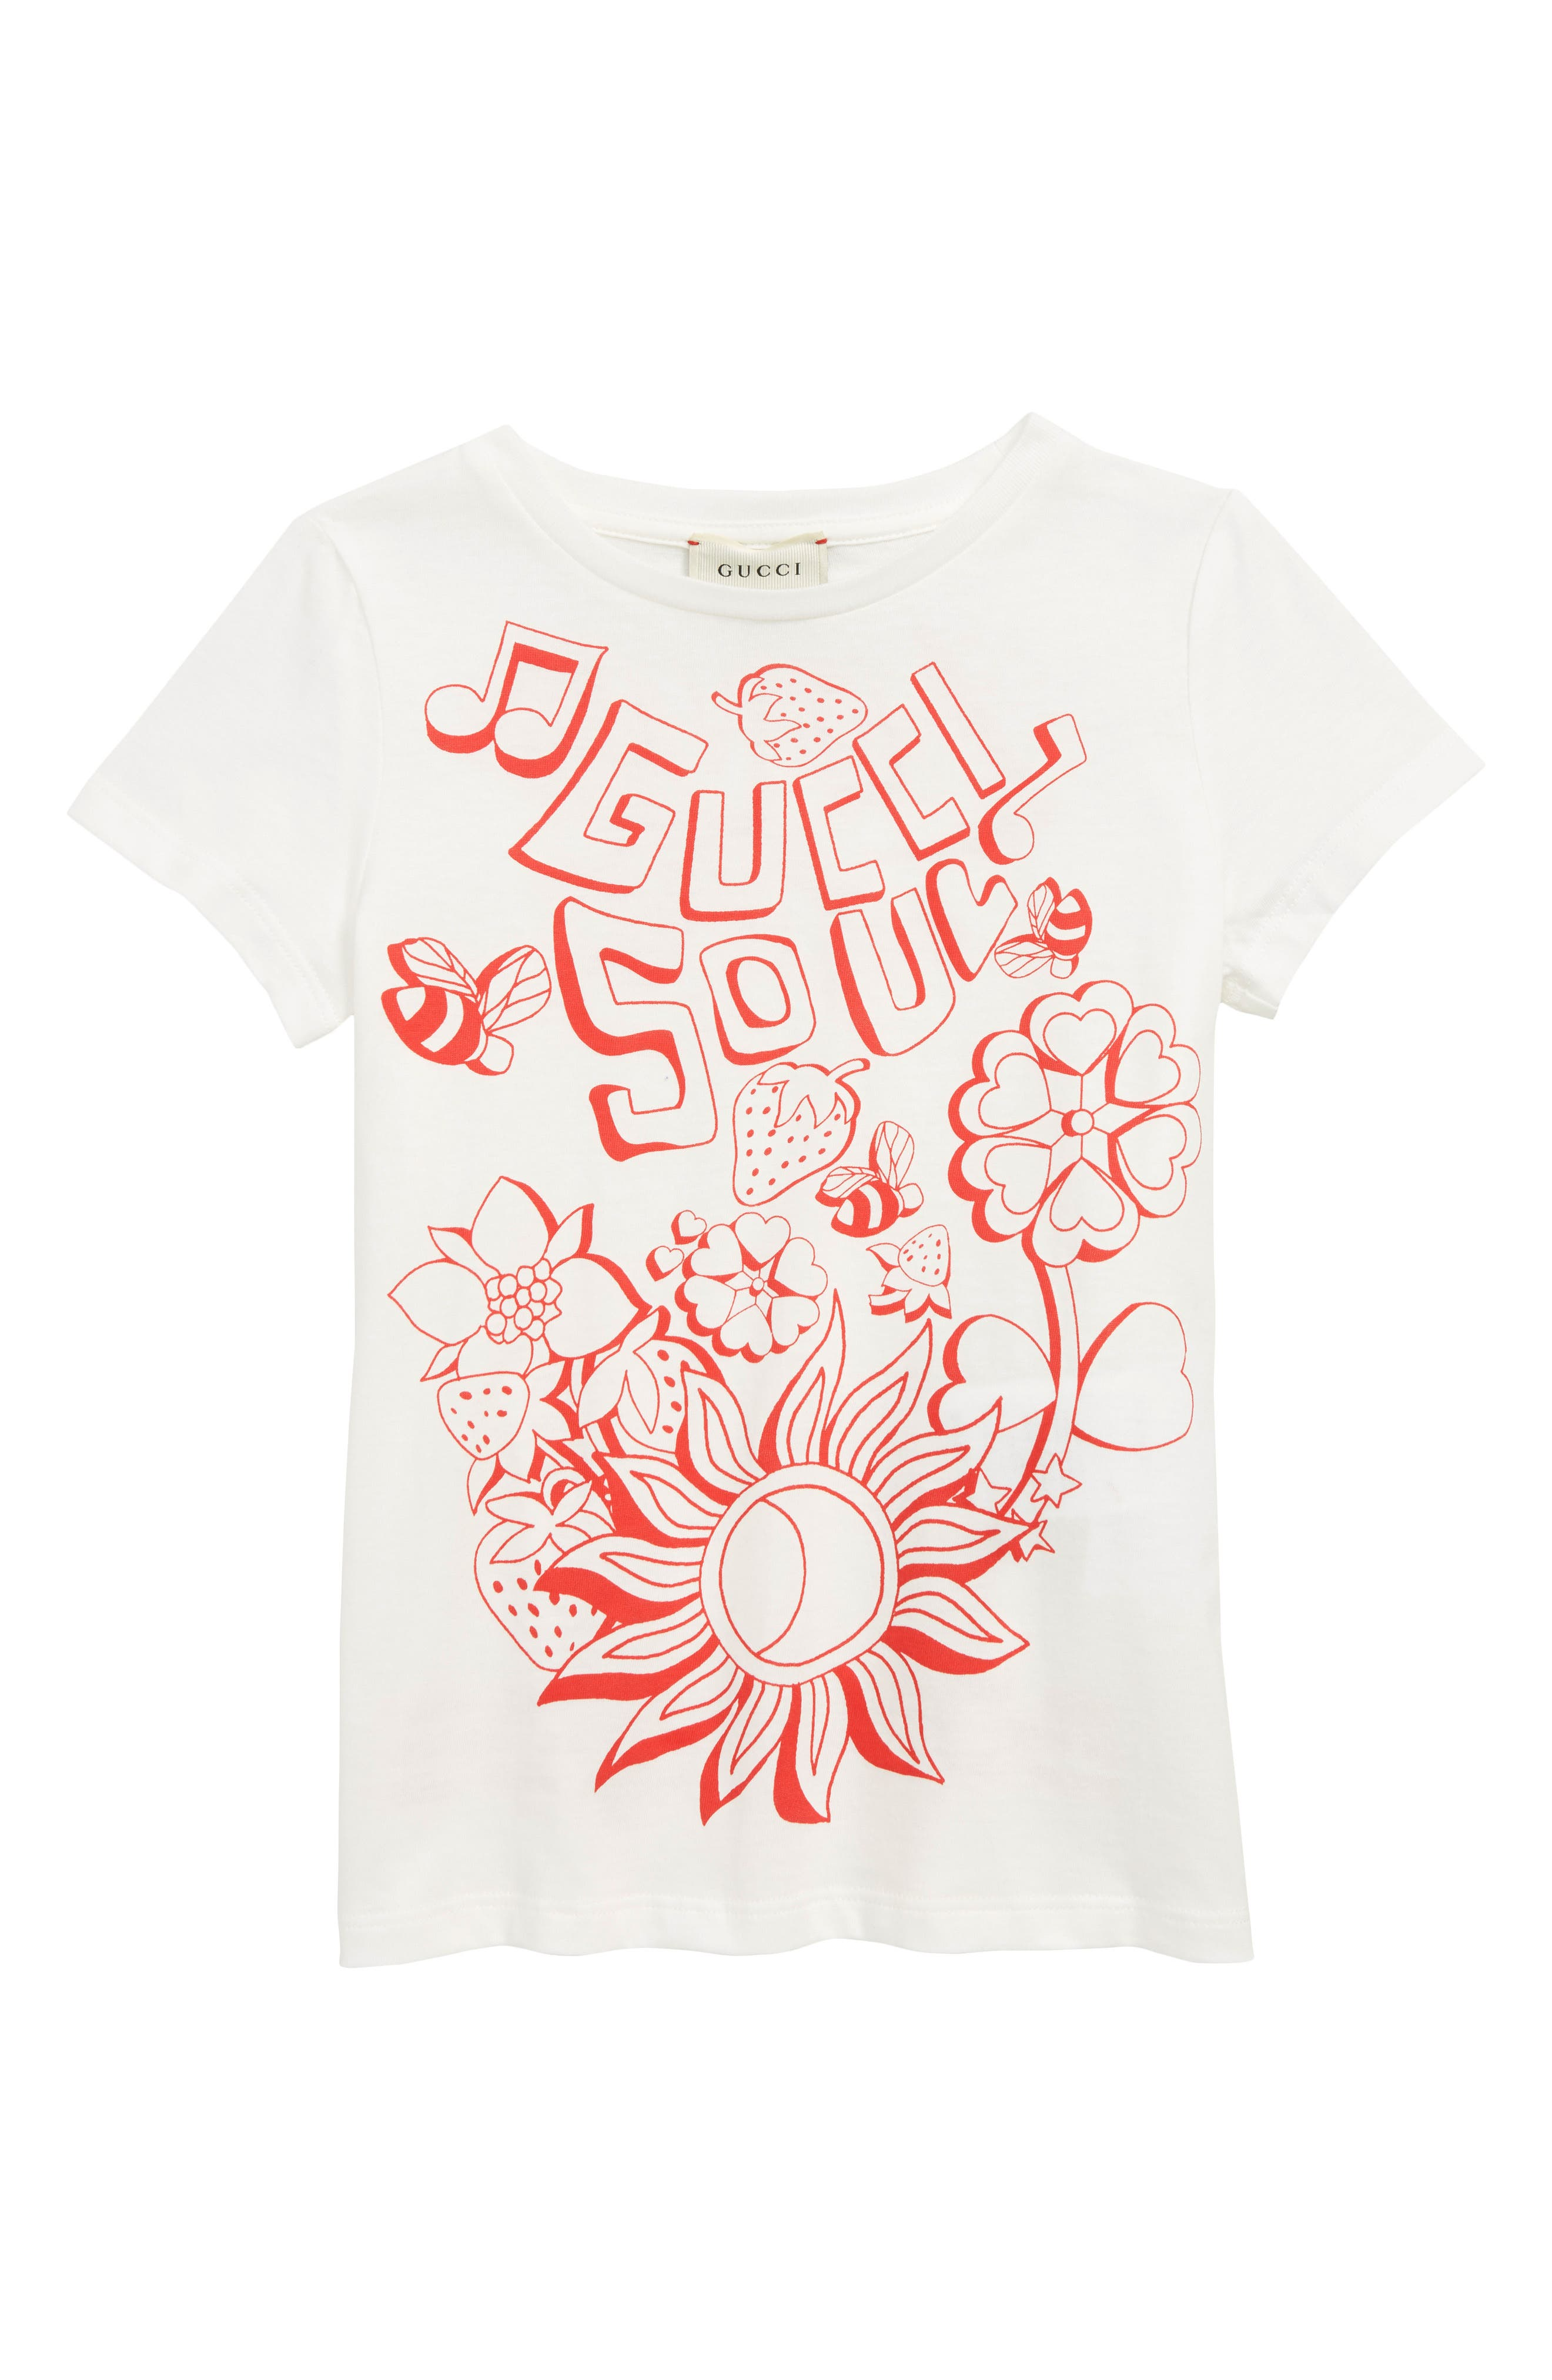 GUCCI,                             Graphic Tee,                             Main thumbnail 1, color,                             WHITE/ BRIGHT RED